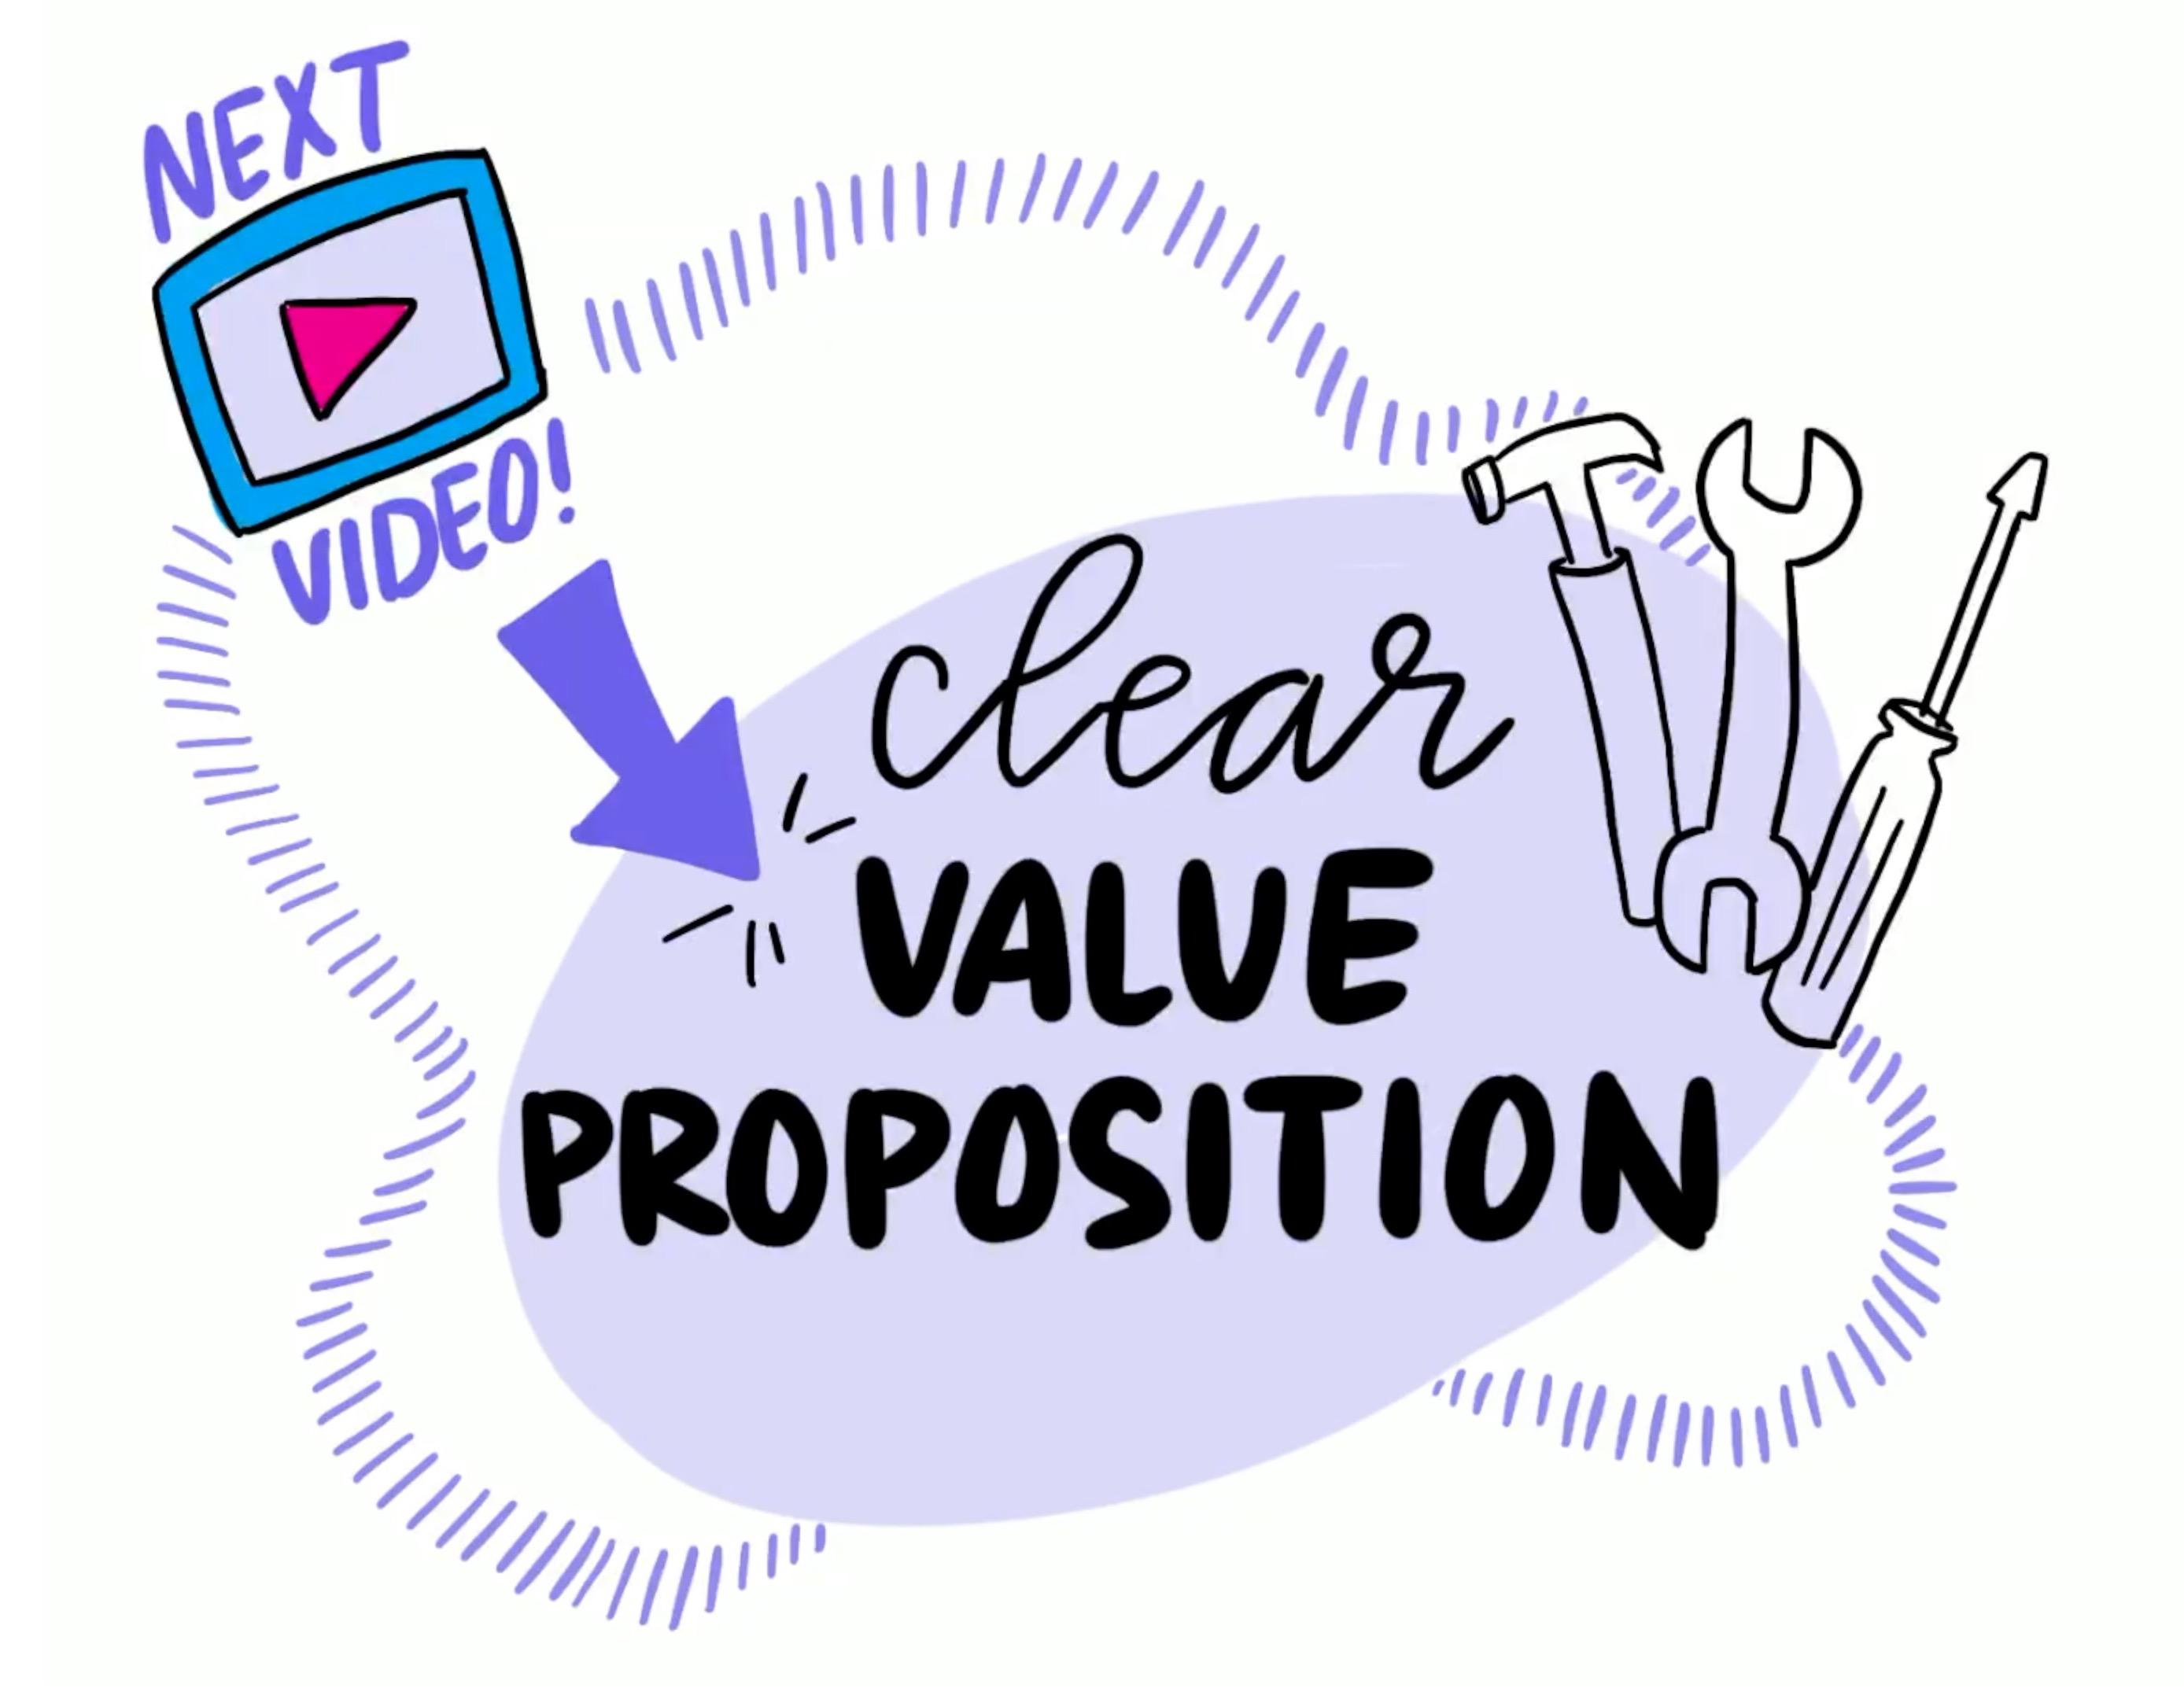 event promotion value proposition